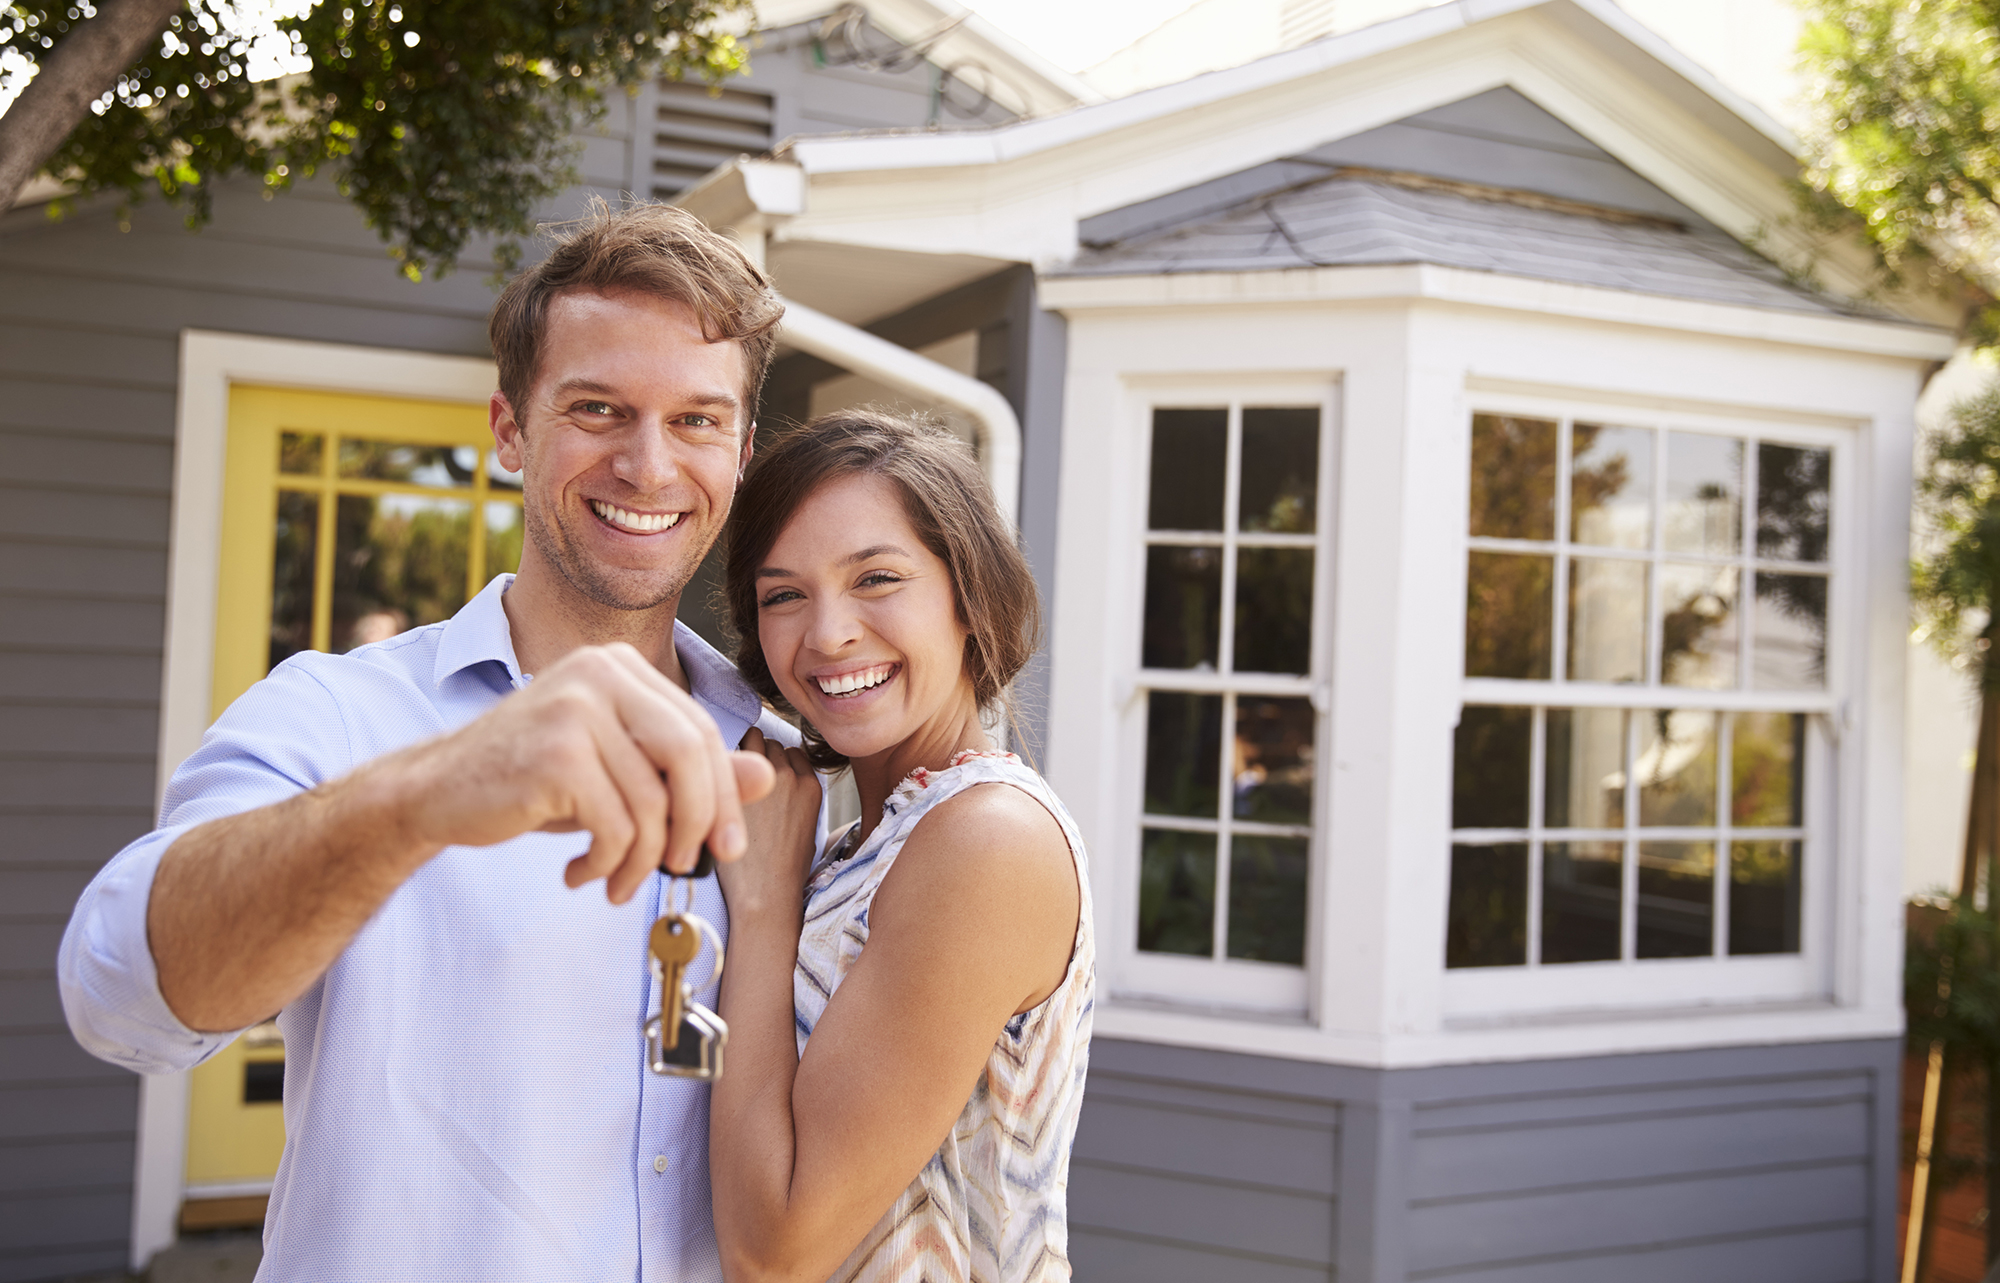 Couple with new house keys. (Image: Shutterstock)